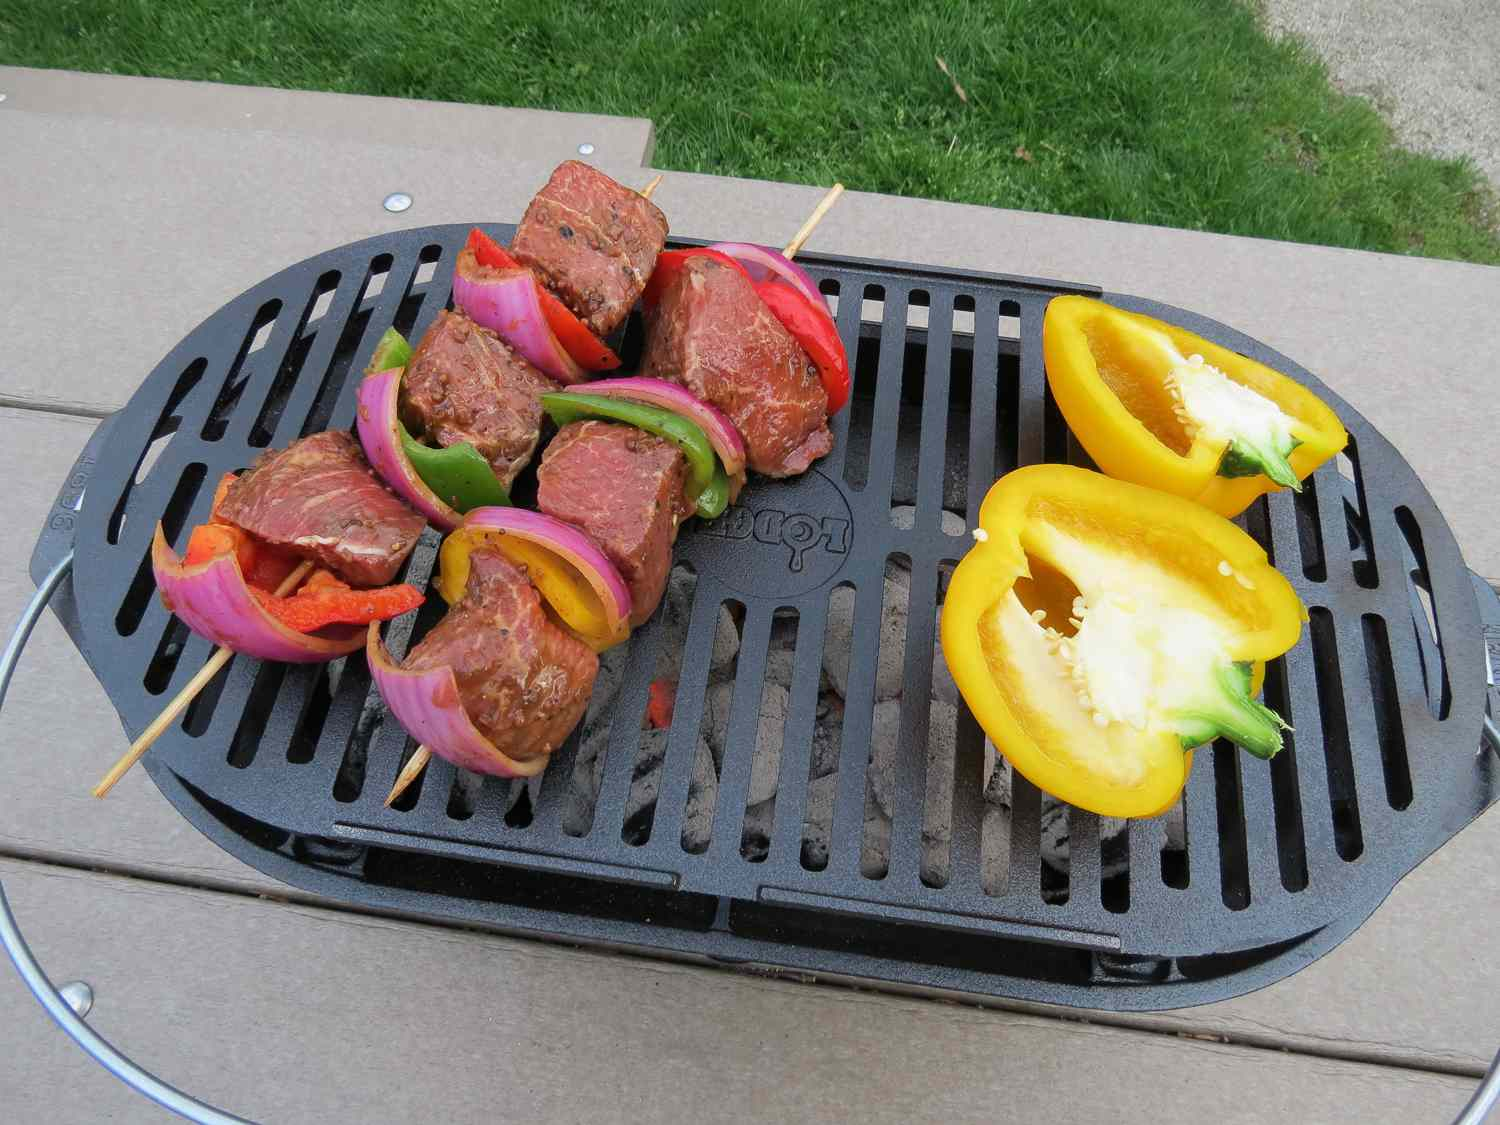 Lodge Cast Iron Grill Review Full Of Flavor Built To Last